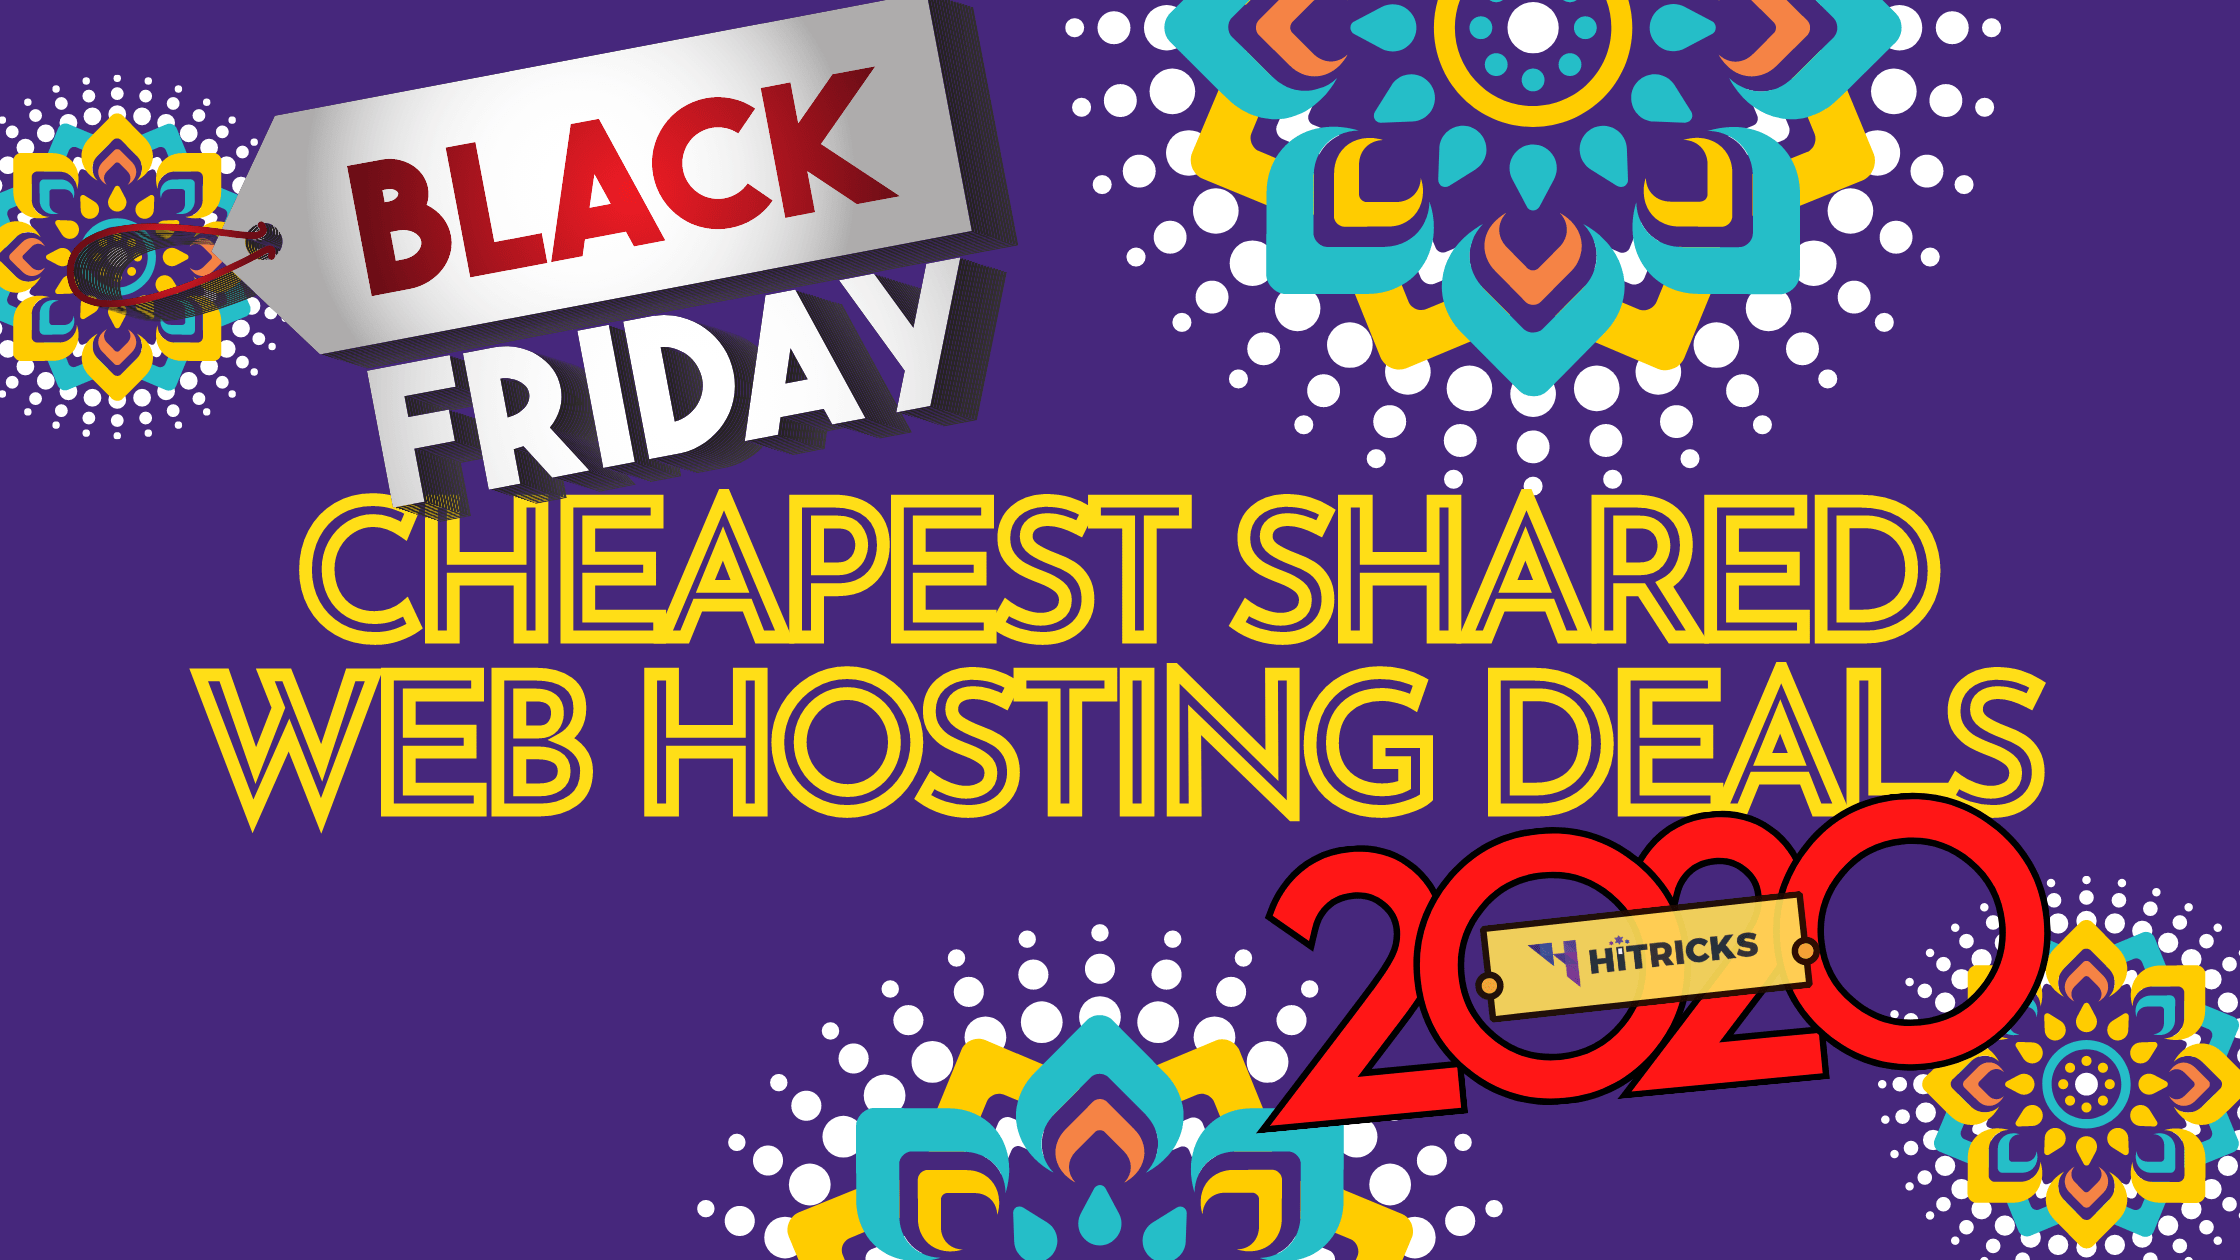 Black Friday 2020: Cheapest Shared Web Hosting Deals